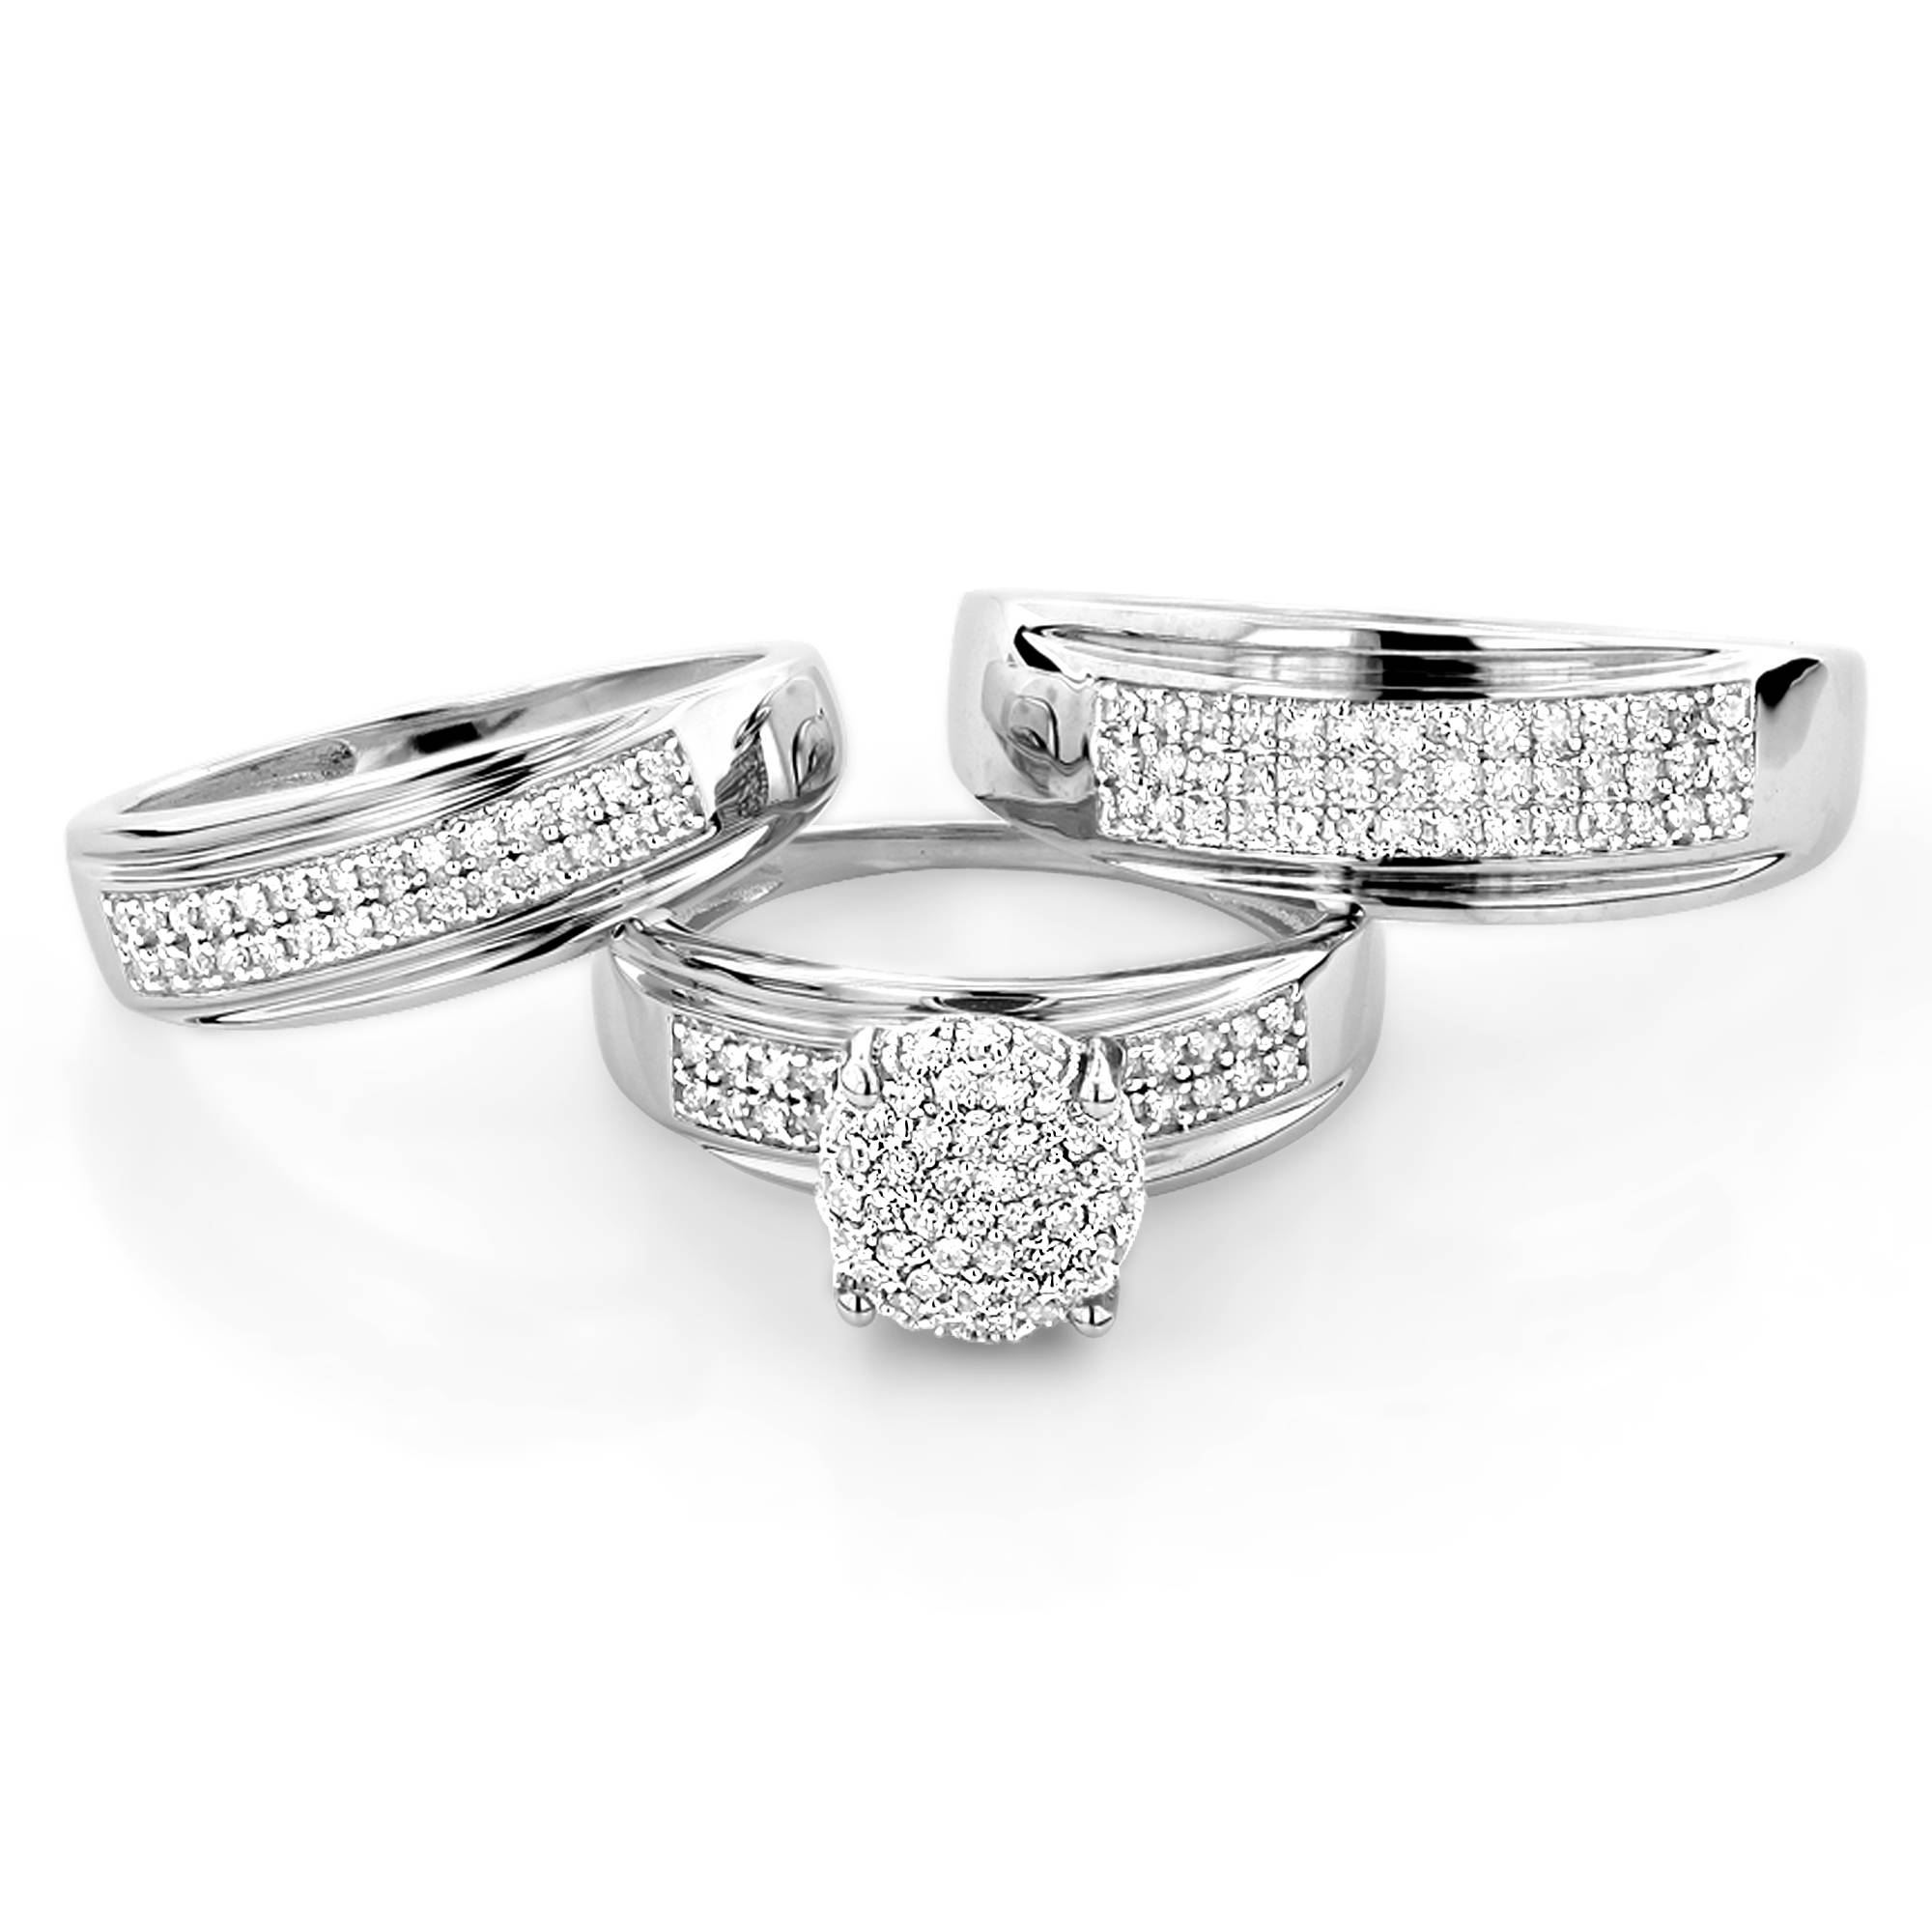 10K Gold Engagement Trio Diamond His And Hers Wedding Ring Set  (View 4 of 15)